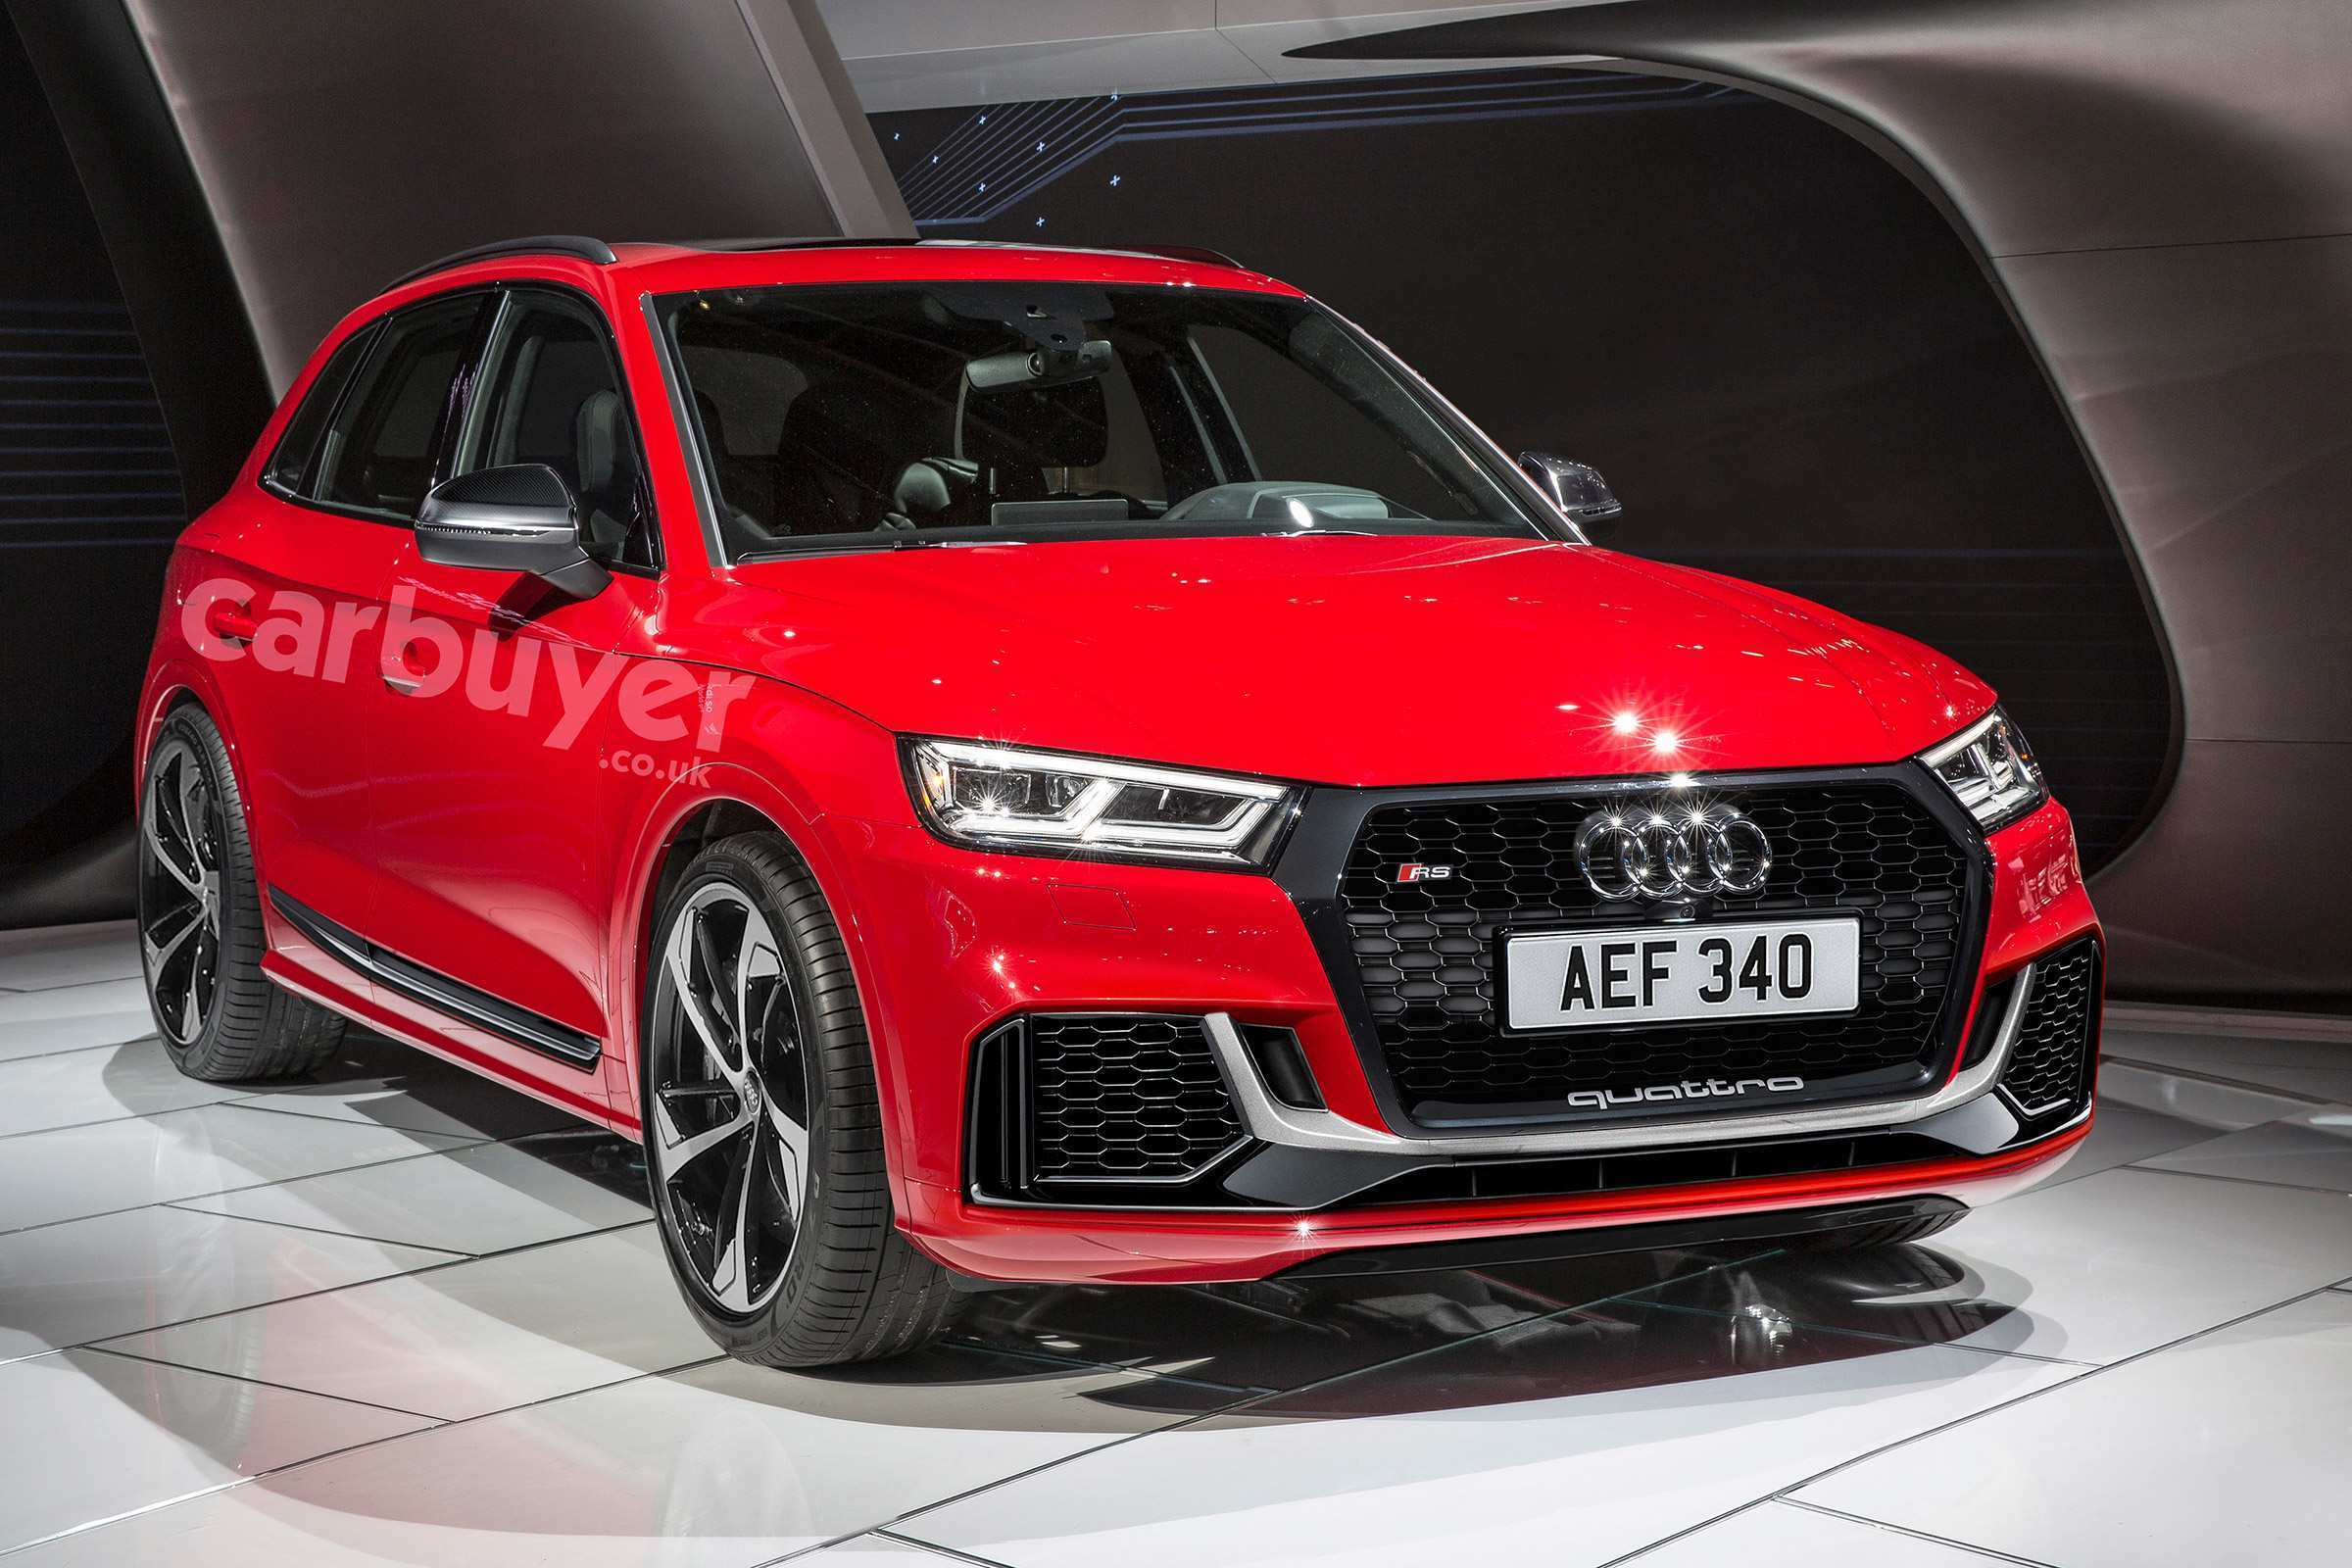 99 Gallery of Best Audi Q5 2019 Release Date Release Date And Specs Reviews with Best Audi Q5 2019 Release Date Release Date And Specs